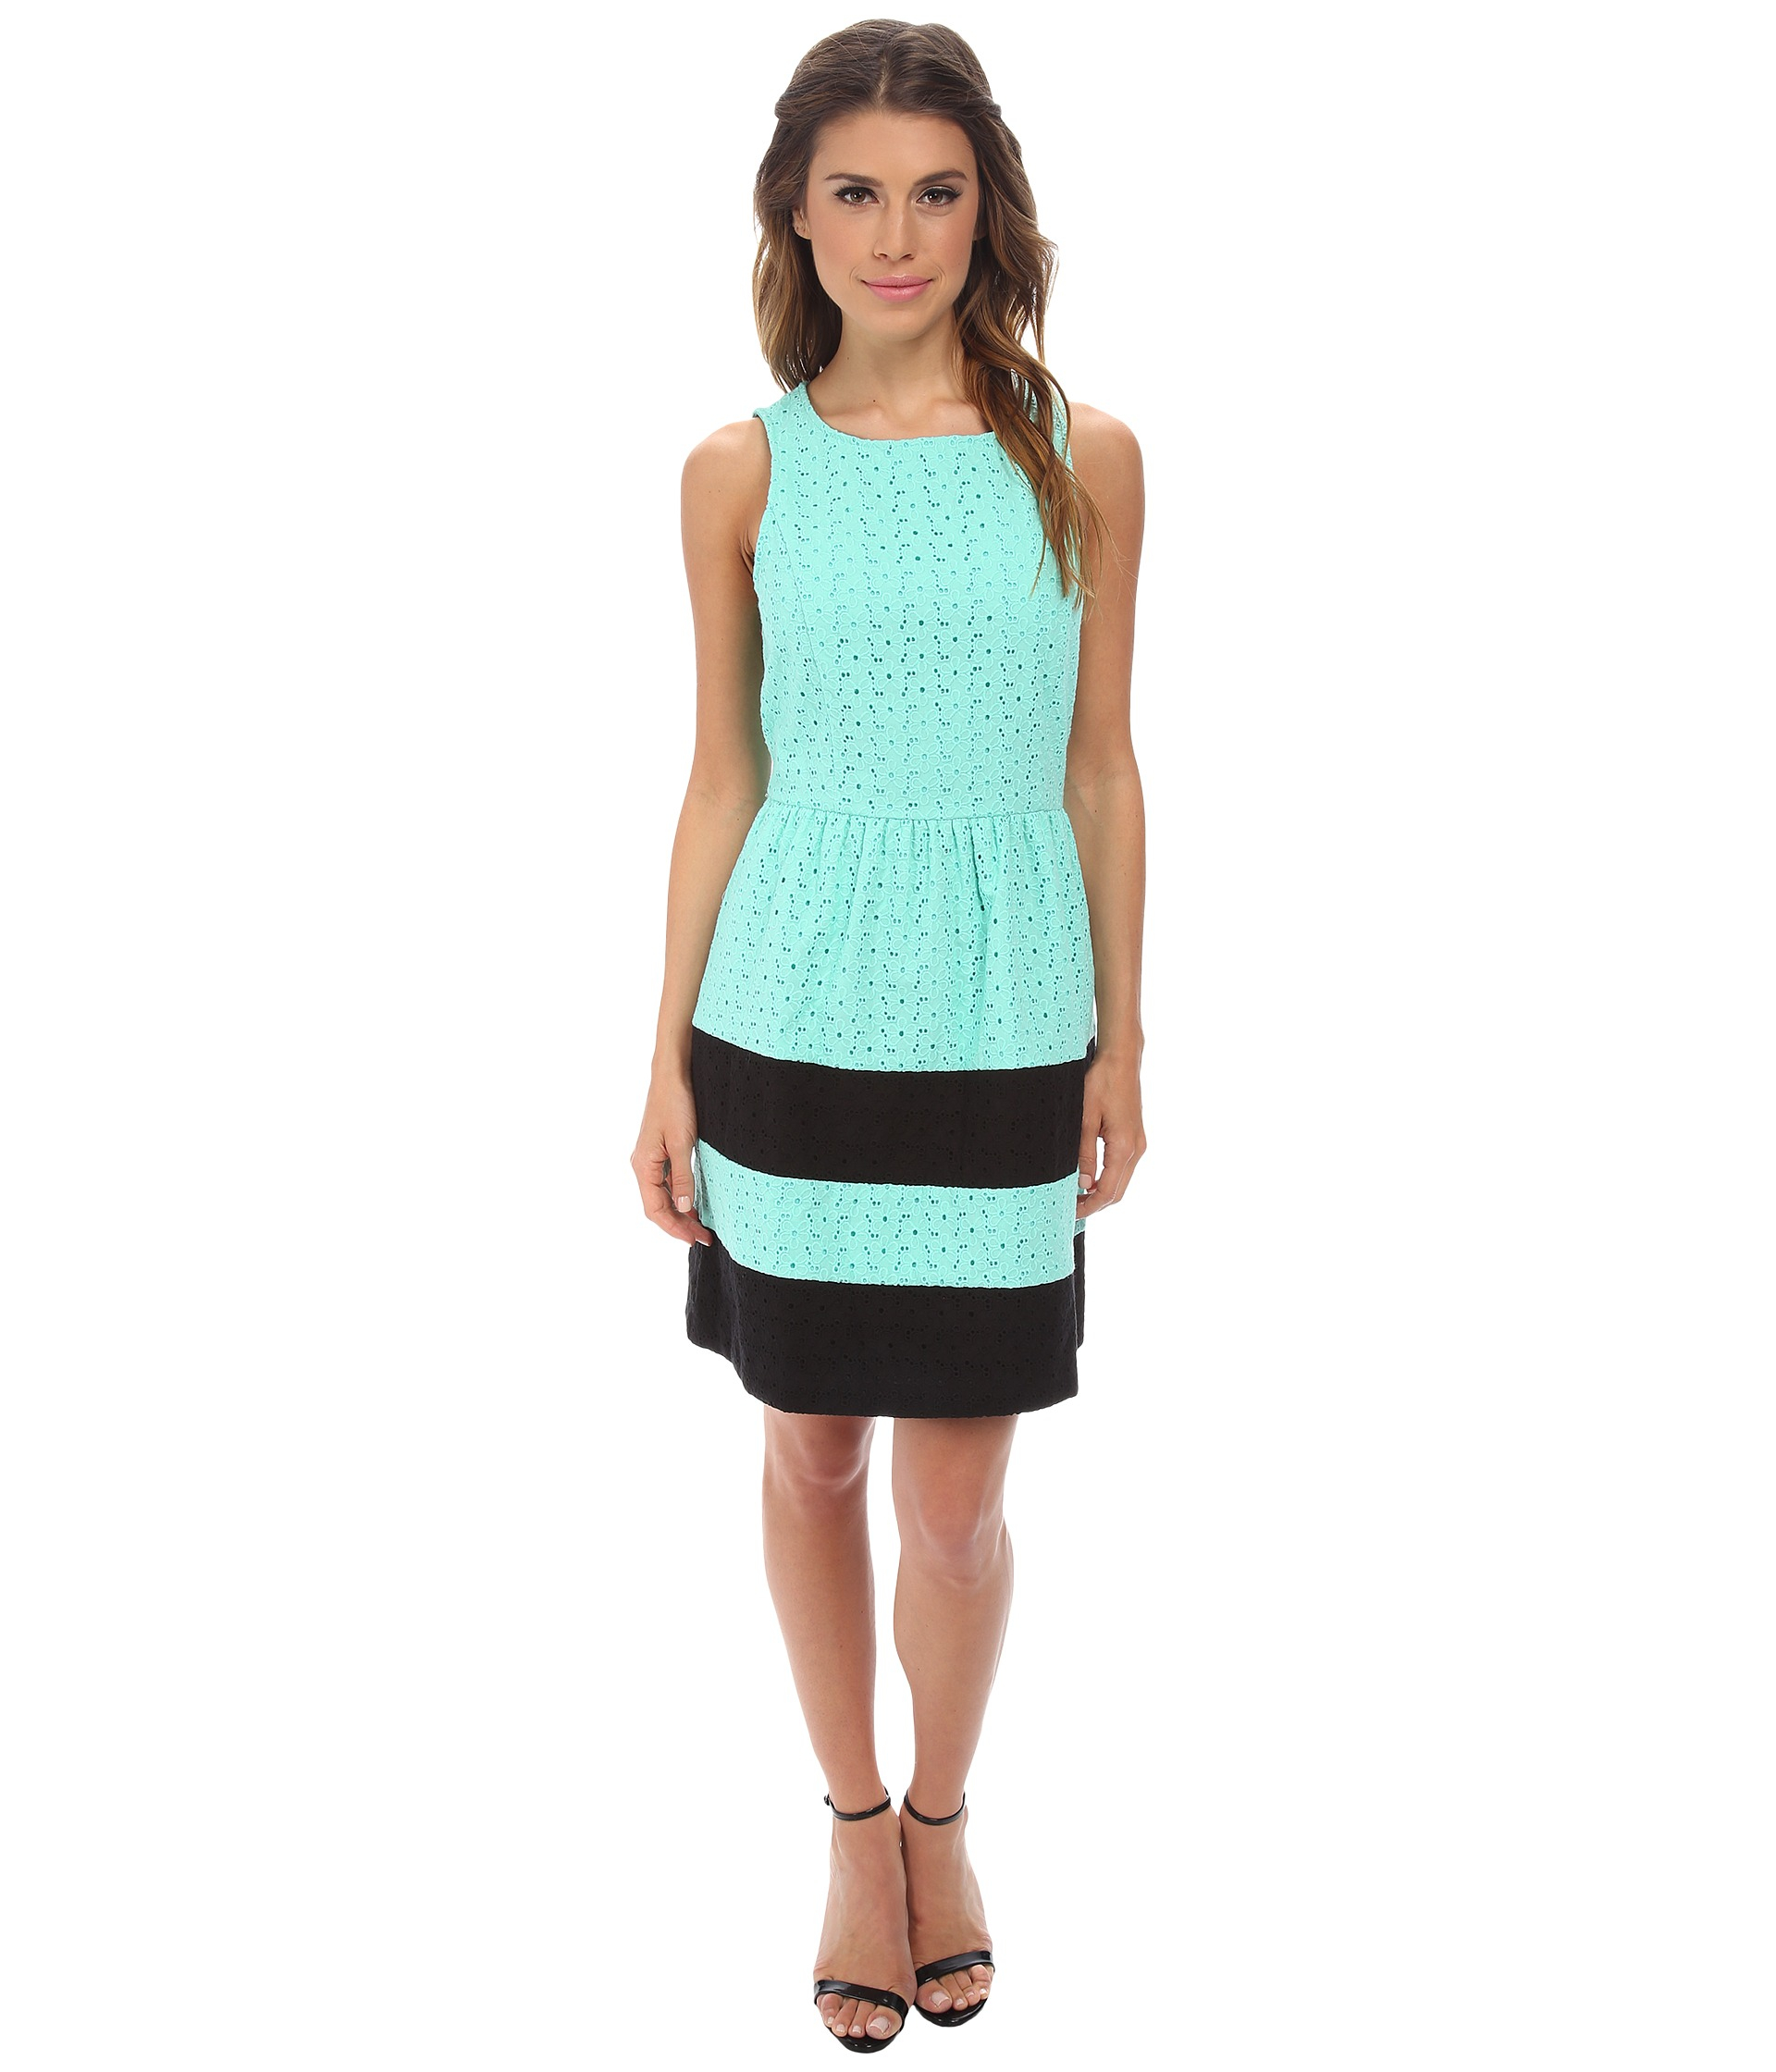 Kensie Stacked Daisy Eyelet Dress Ks2k7422 In Green Lyst